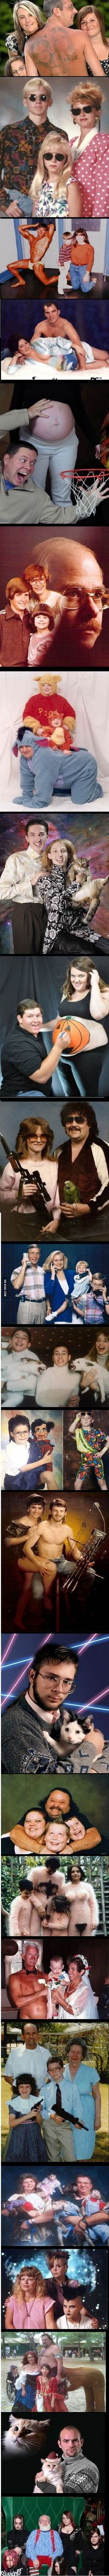 Just some awkward family photos...these never get old!